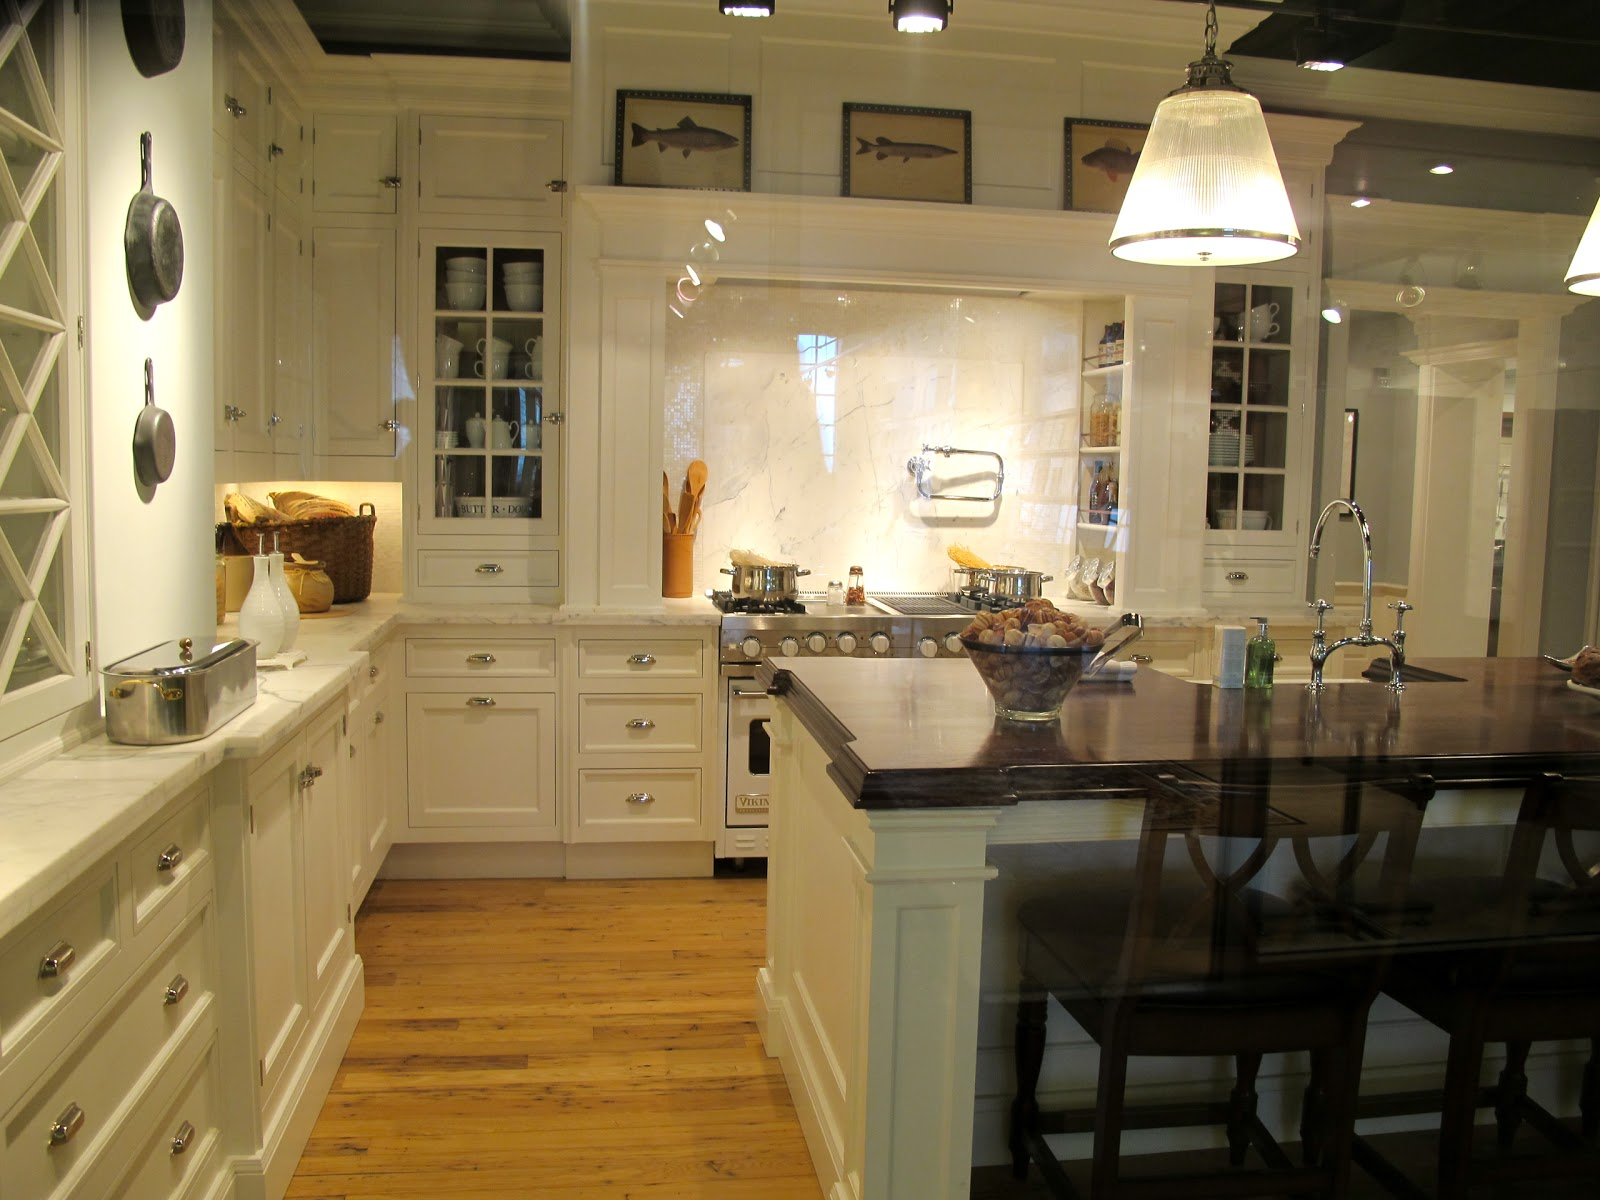 Jenny steffens hobick kitchens the most amazing for Kitchen remodel